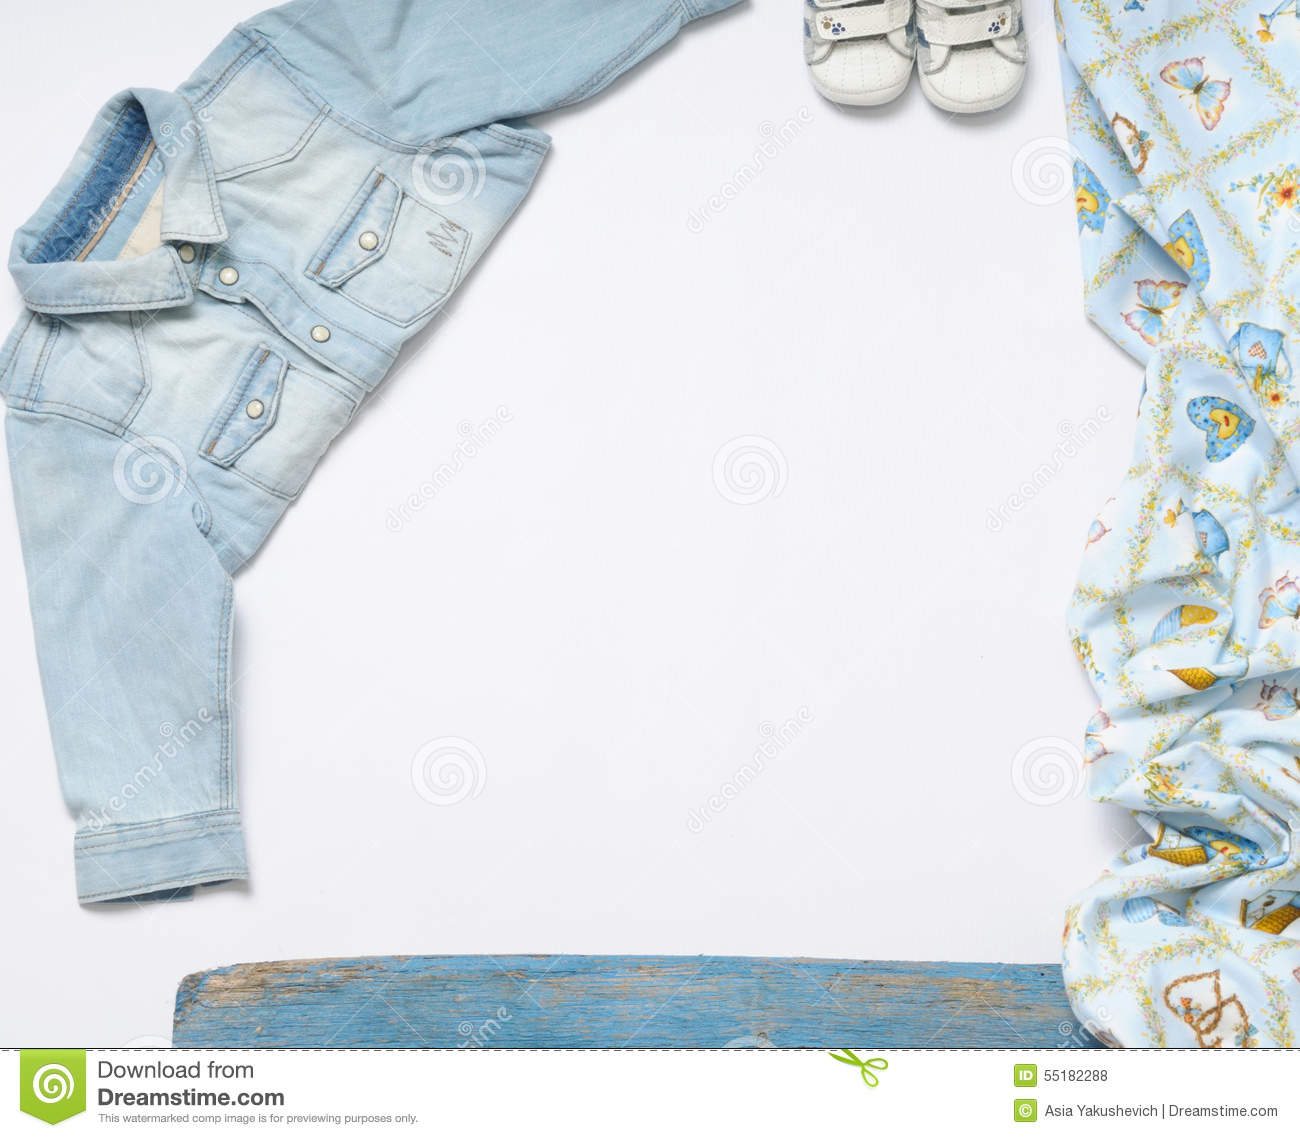 6b2bf41d69594 horizontal frame of jeans stuff and sneakers for baby boy on white  background